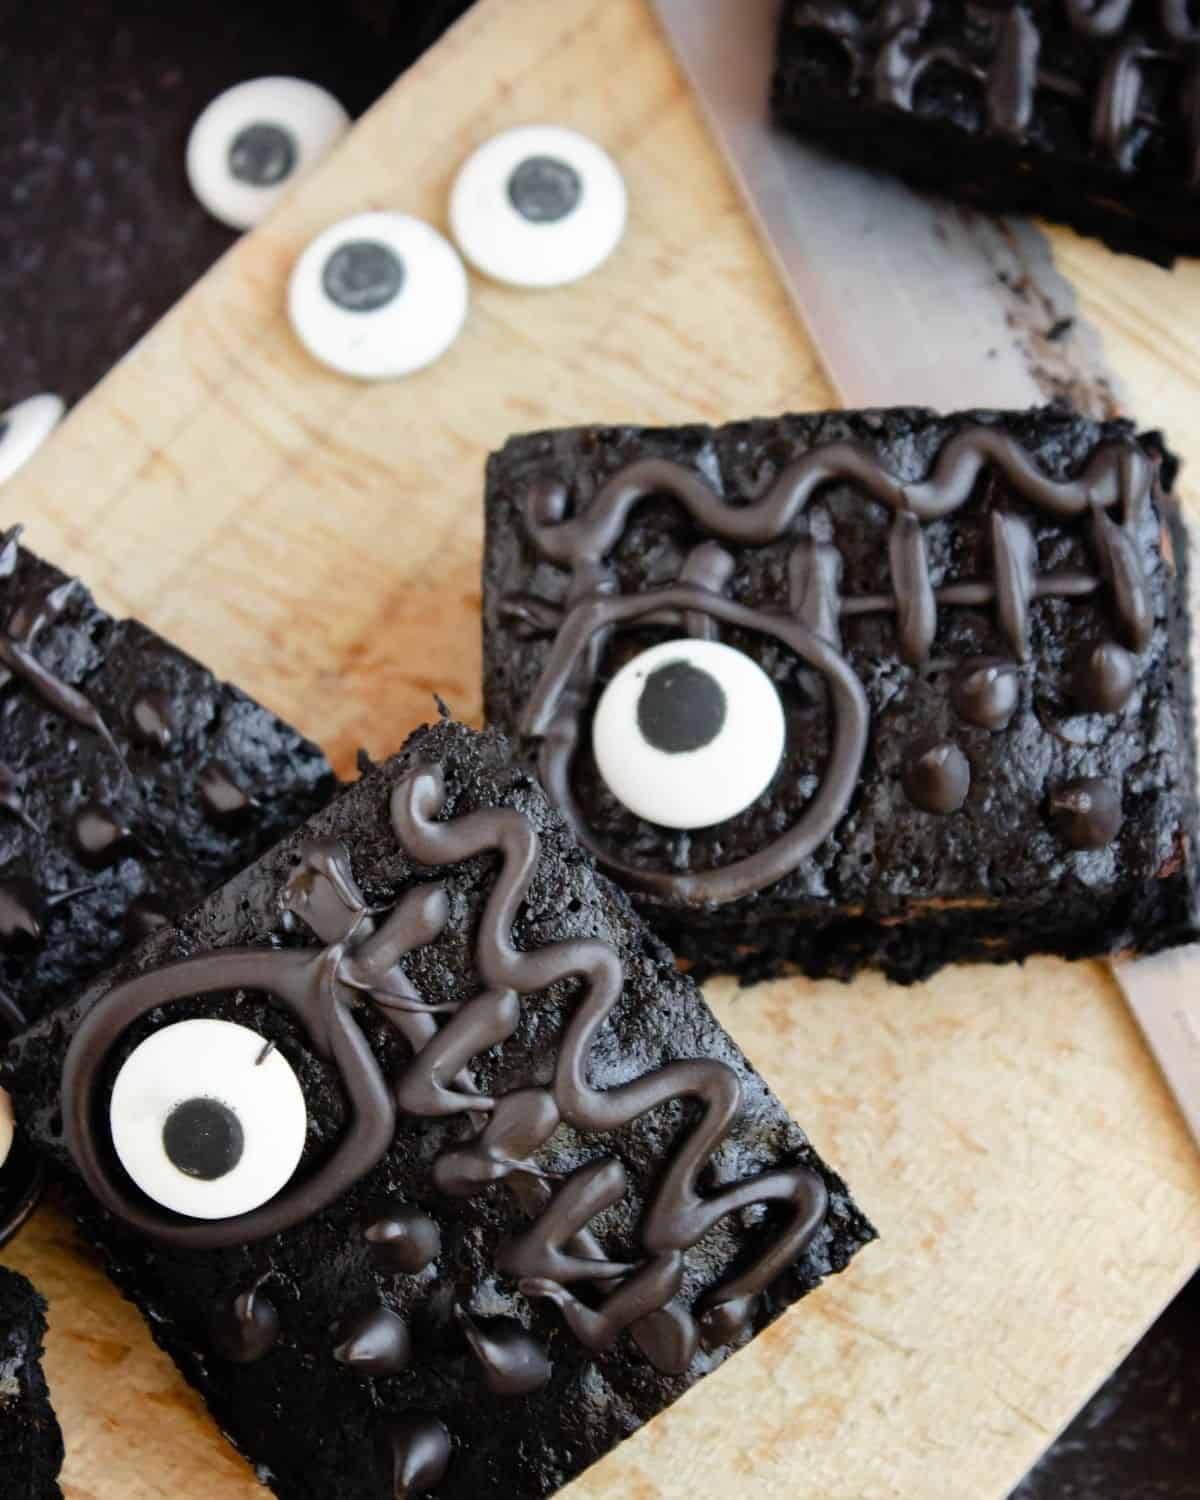 Brownie squares with candy eyes and chocolate designs on the brownie.